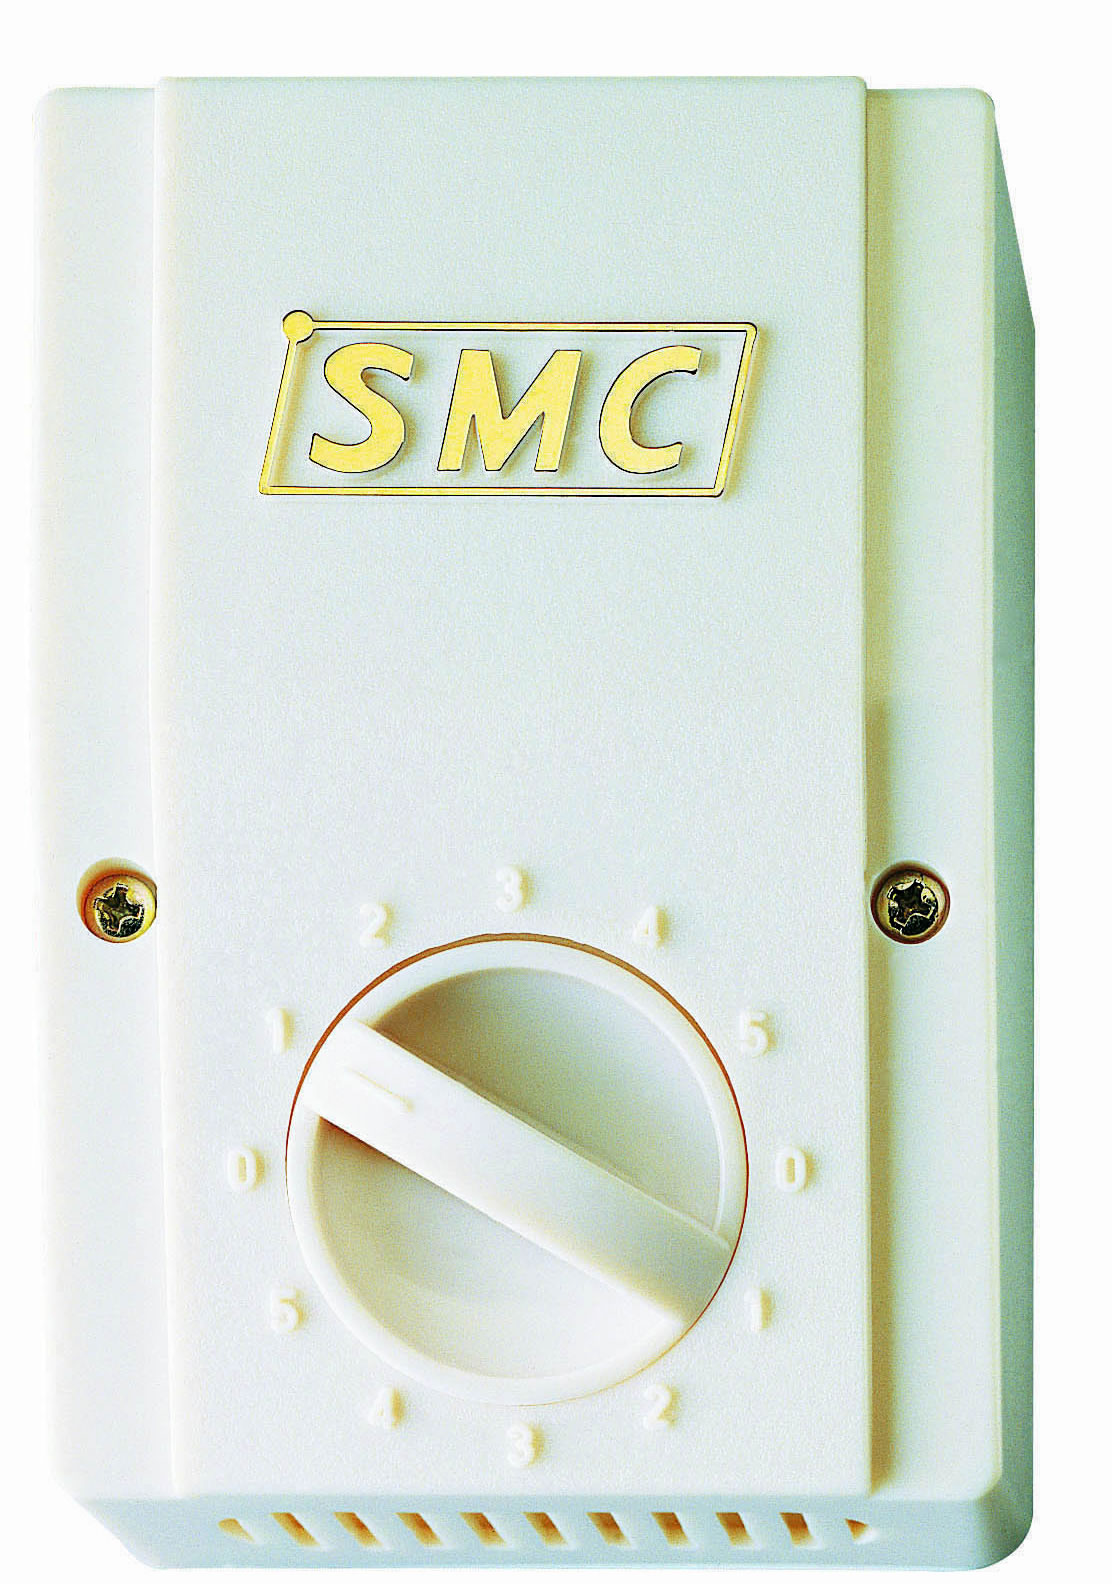 Emsd smc 5 speed ceiling fan regulators 1041 smc 5 speed ceiling fan regulators aloadofball